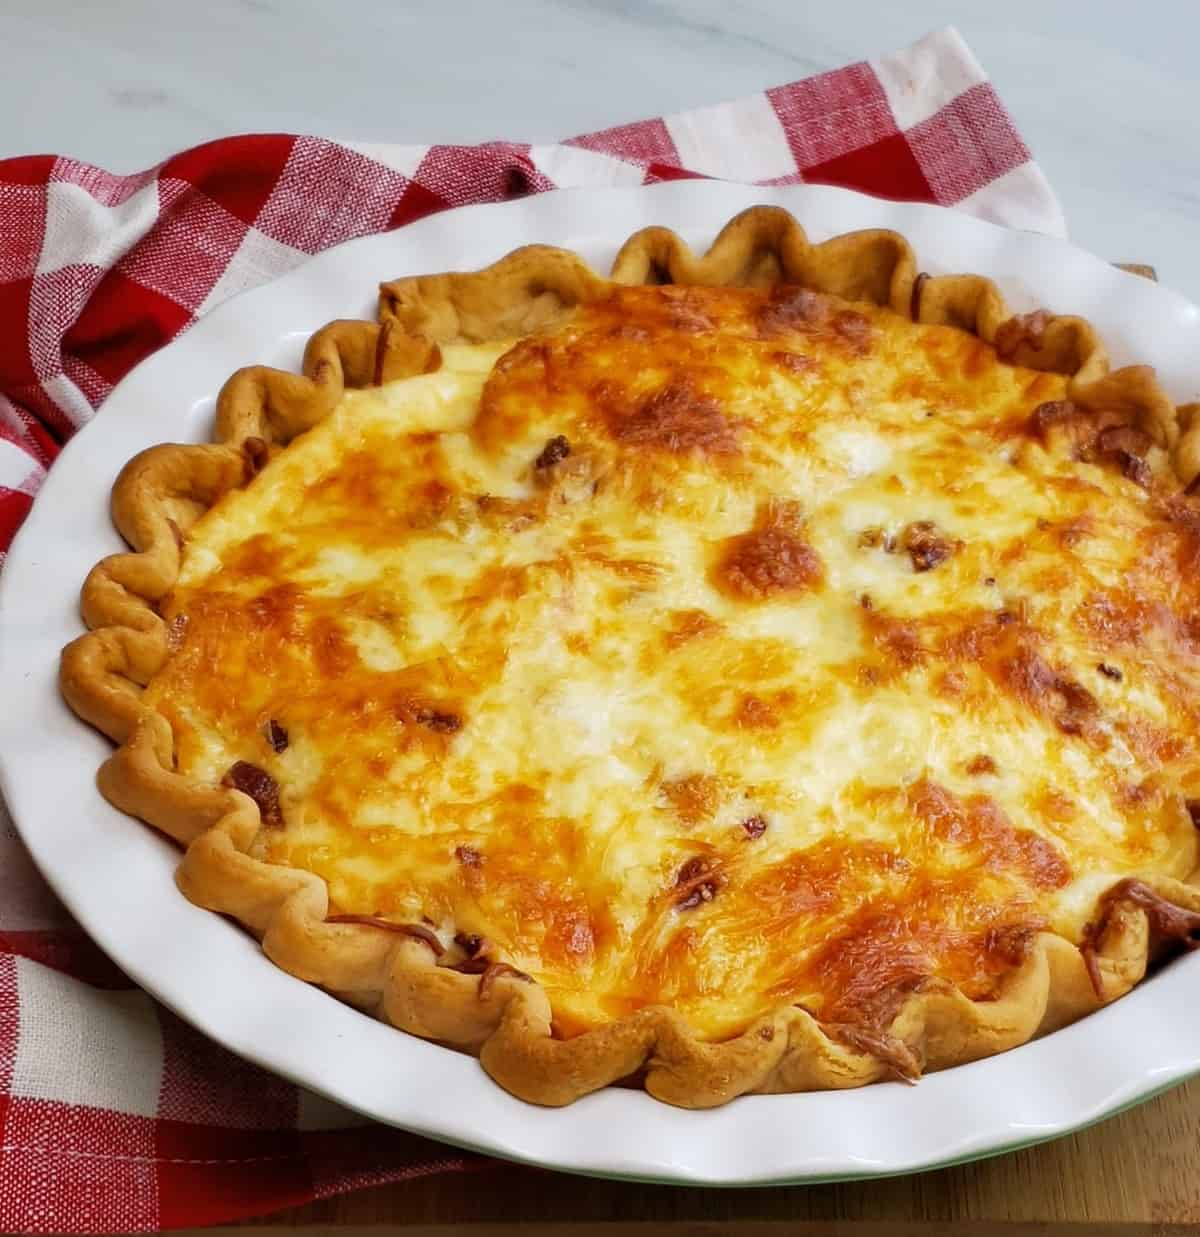 baked cheesy tomato pie, whole in white pie dish on a red checkered napkin